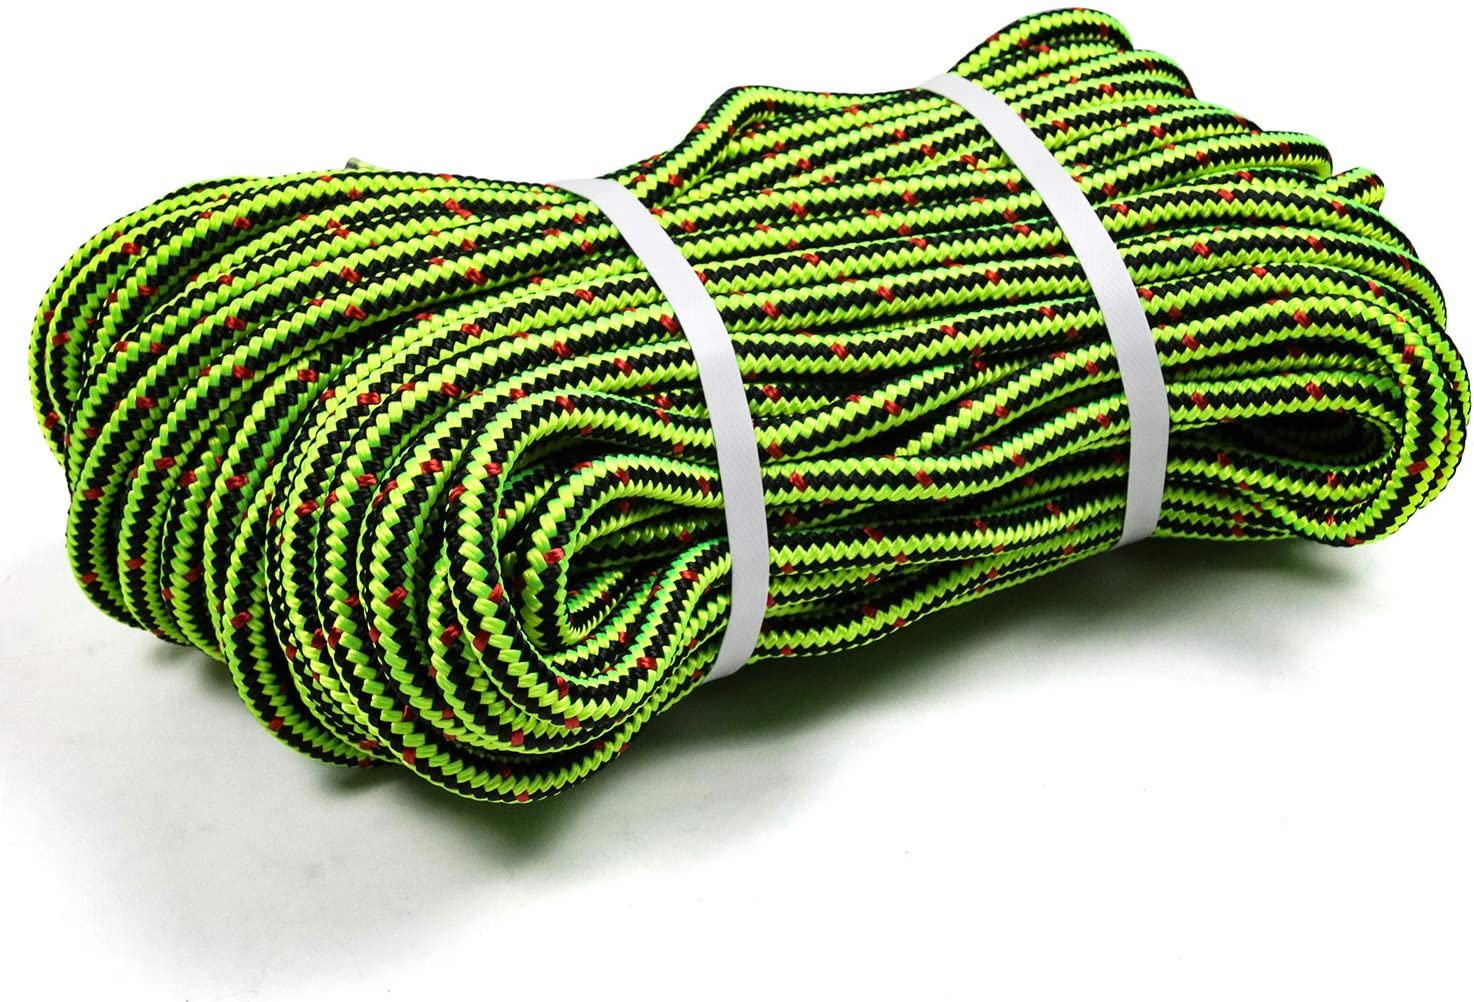 "Perantlb 16 Strand Arborist Climbing Rope, UV Resistant and Weather Resistant Double Braided Boat rope1 / 2""by 150 'Black with Green"